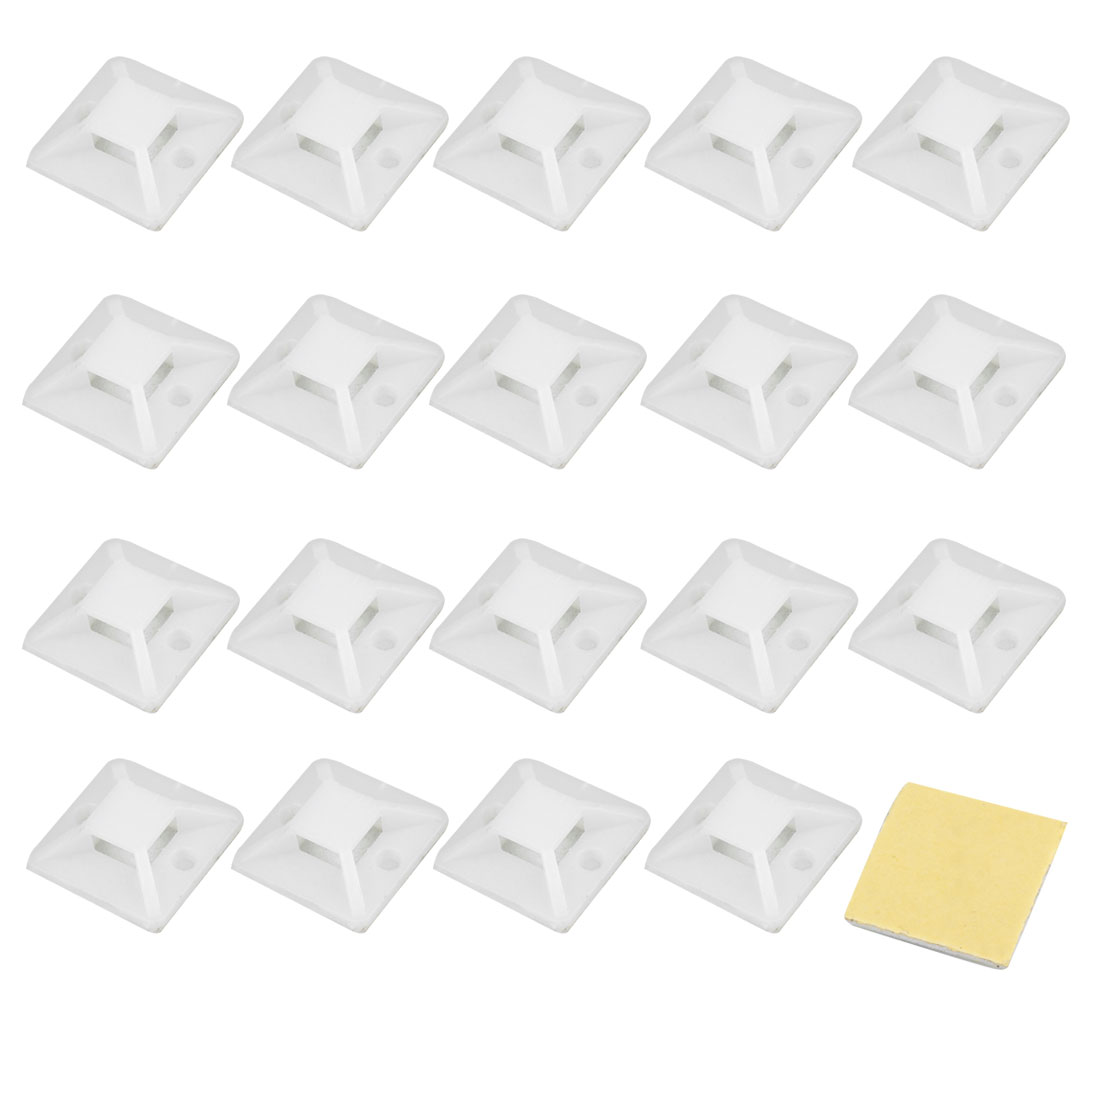 20 Pcs White Yellow Self Adhesive Cable Tie Mount Base Holder 24 x 24 x 7.8mm